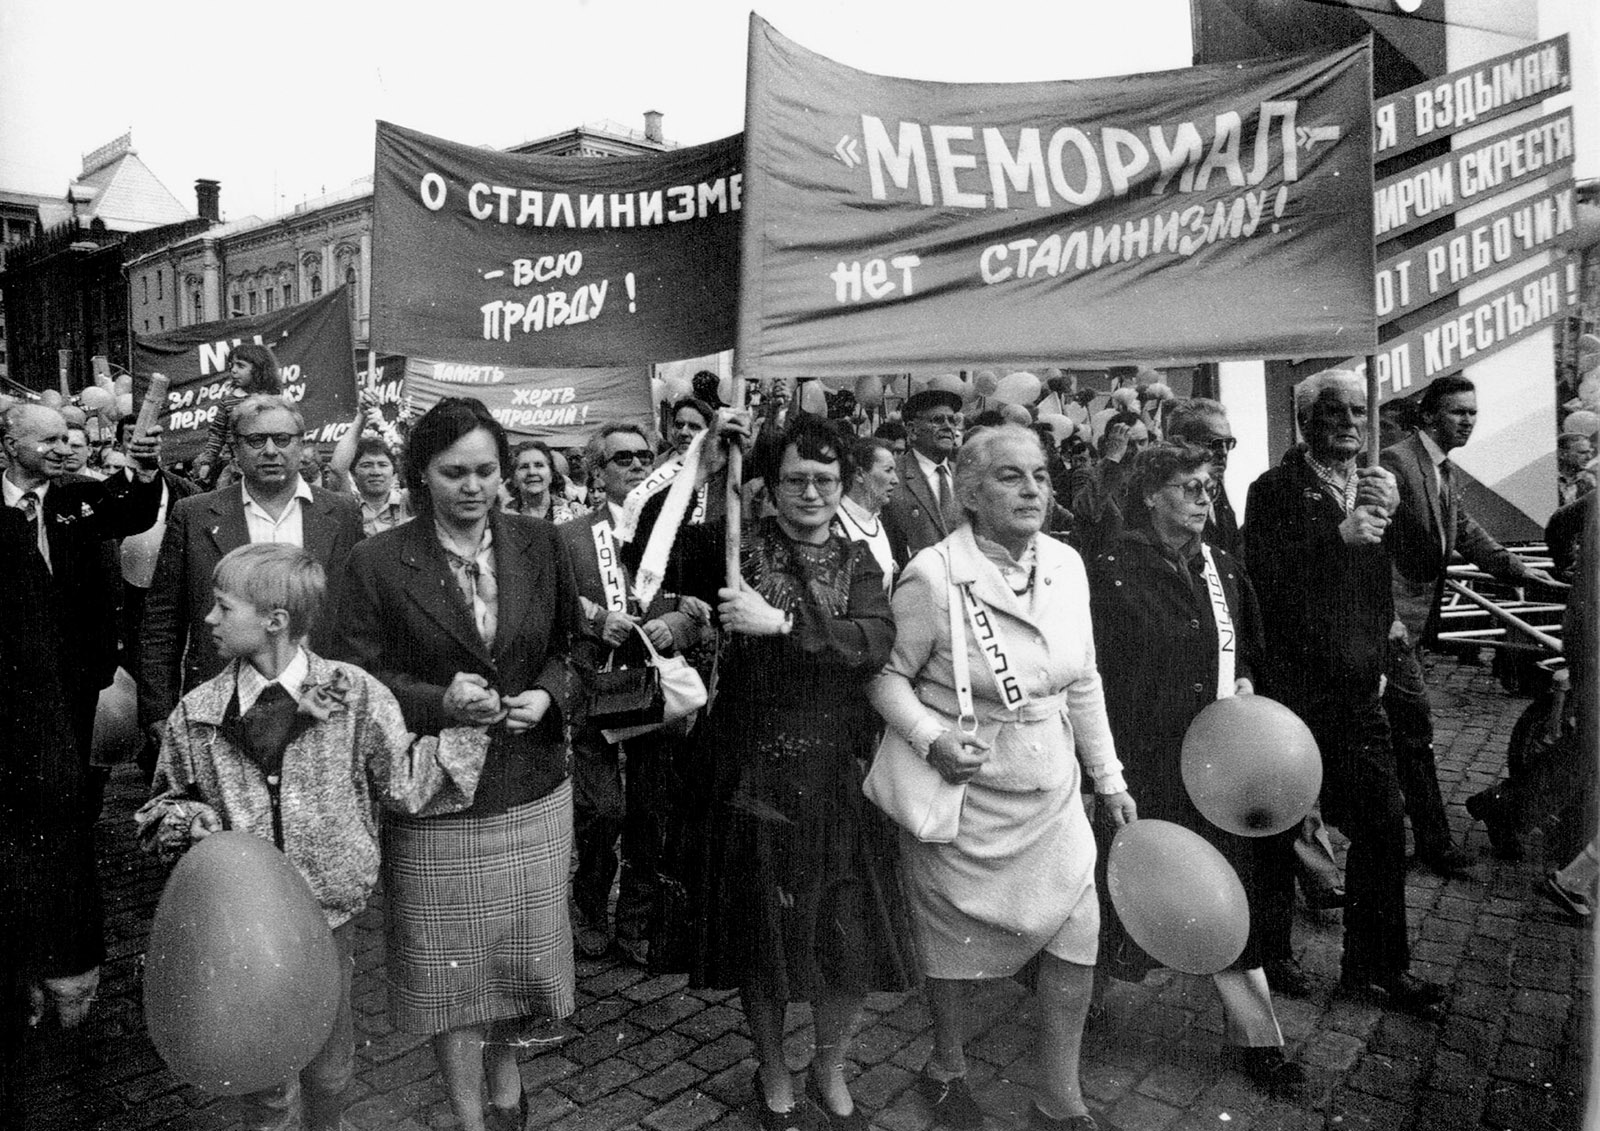 Supporters of the Memorial Society taking part in an International Workers' Day march, Moscow, May 1990